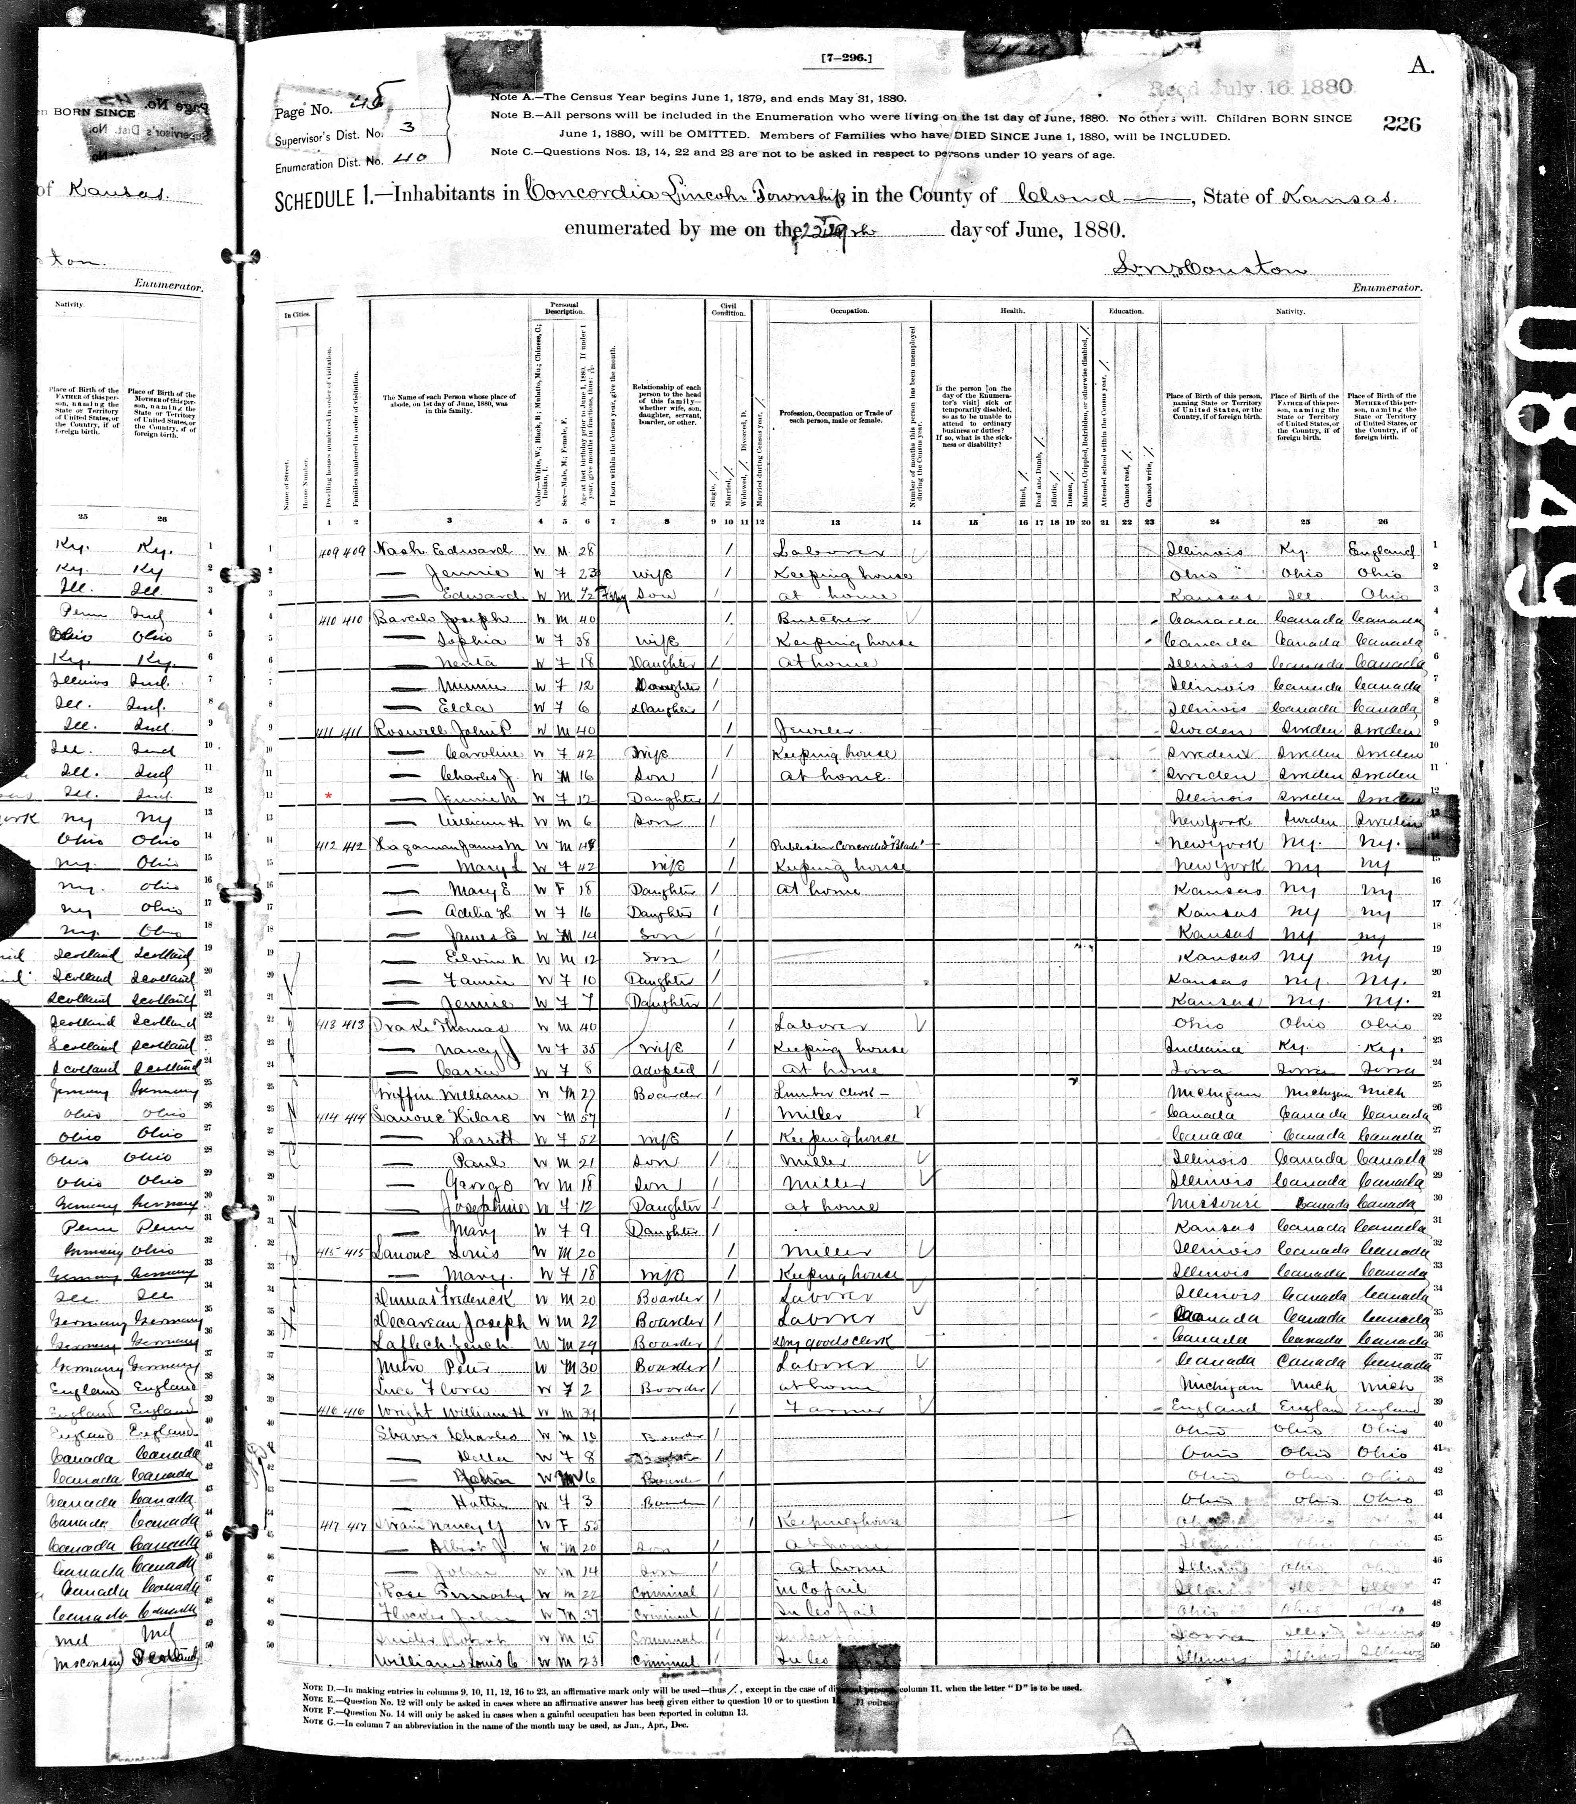 Illinois bureau county princeton - Bureau County And Was Elected To That Position By The Citizens Of Bureau County In December Of 1884